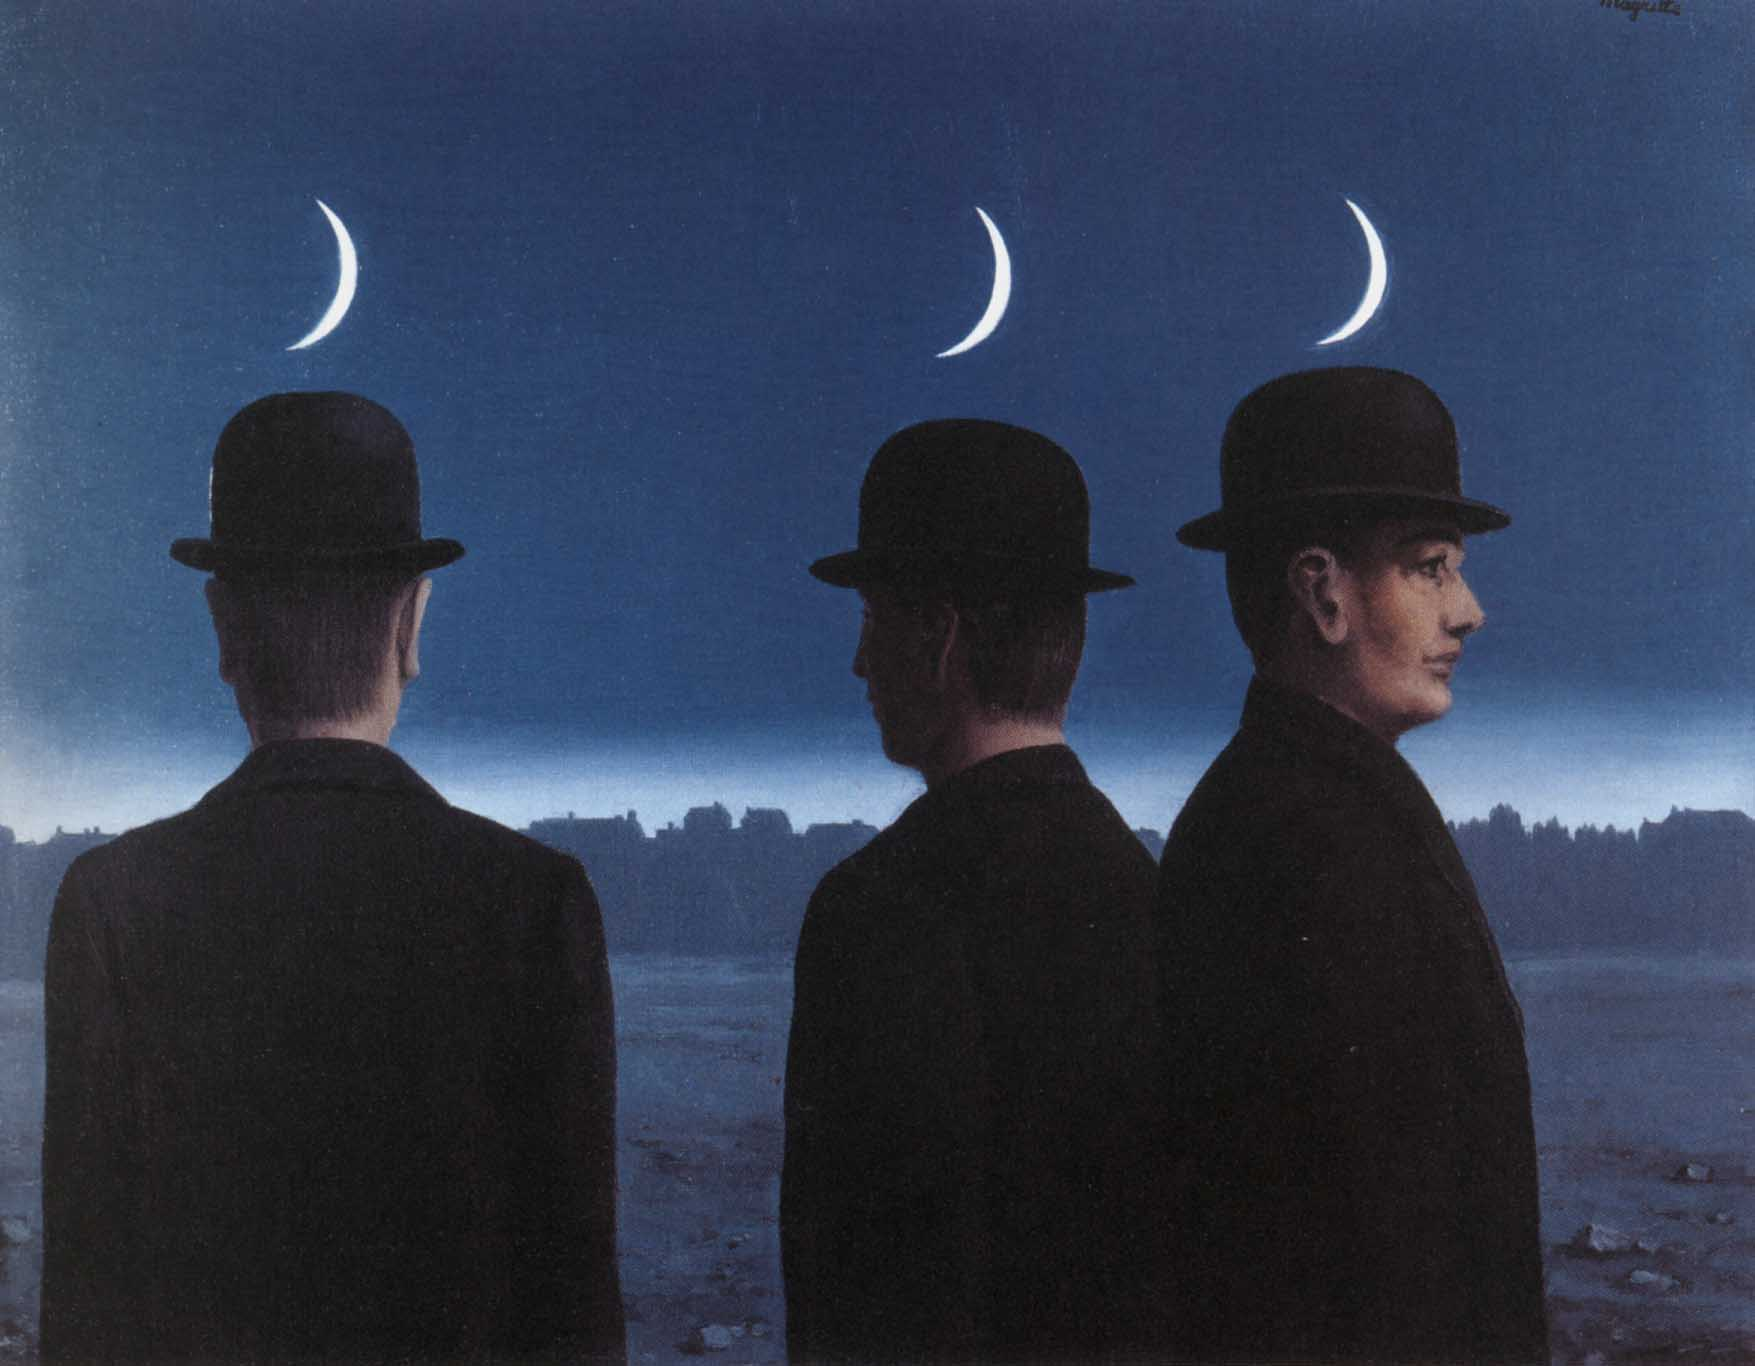 http://uploads3.wikipaintings.org/images/rene-magritte/the-masterpiece-or-the-mysteries-of-the-horizon-1955(1).jpg